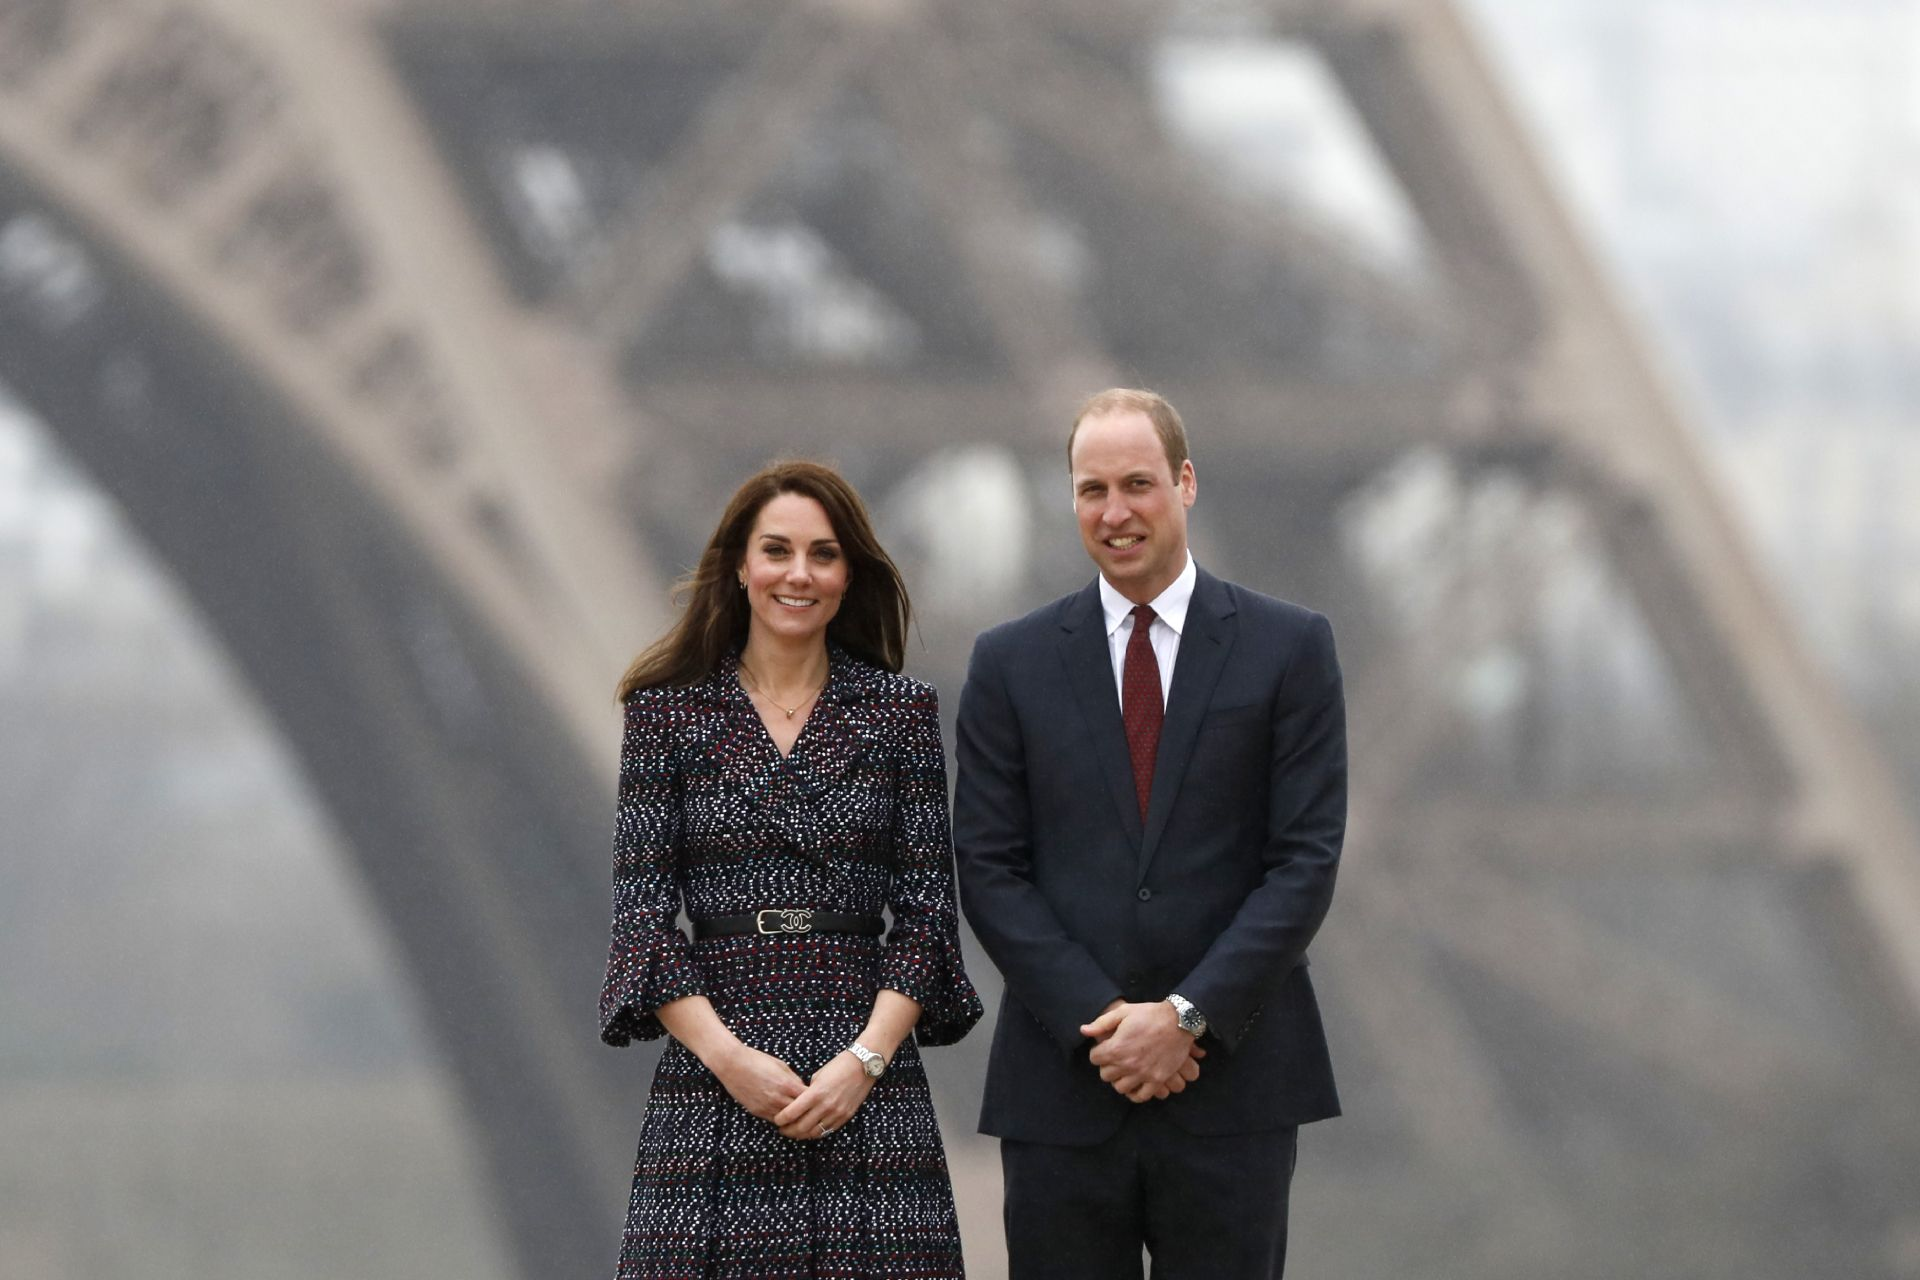 Britain's Prince William, Duke of Cambridge (R) and his wife Britain's Kate, Duchess of Cambridge (L) pose in front of the Eiffel Tower during a visit to France, on March 18, 2017 in Paris.Britain's Prince William pledged on the eve that his country will retain close links with France despite Brexit, as he and his wife Kate began a two-day visit to Paris. / AFP PHOTO / Thomas SAMSON